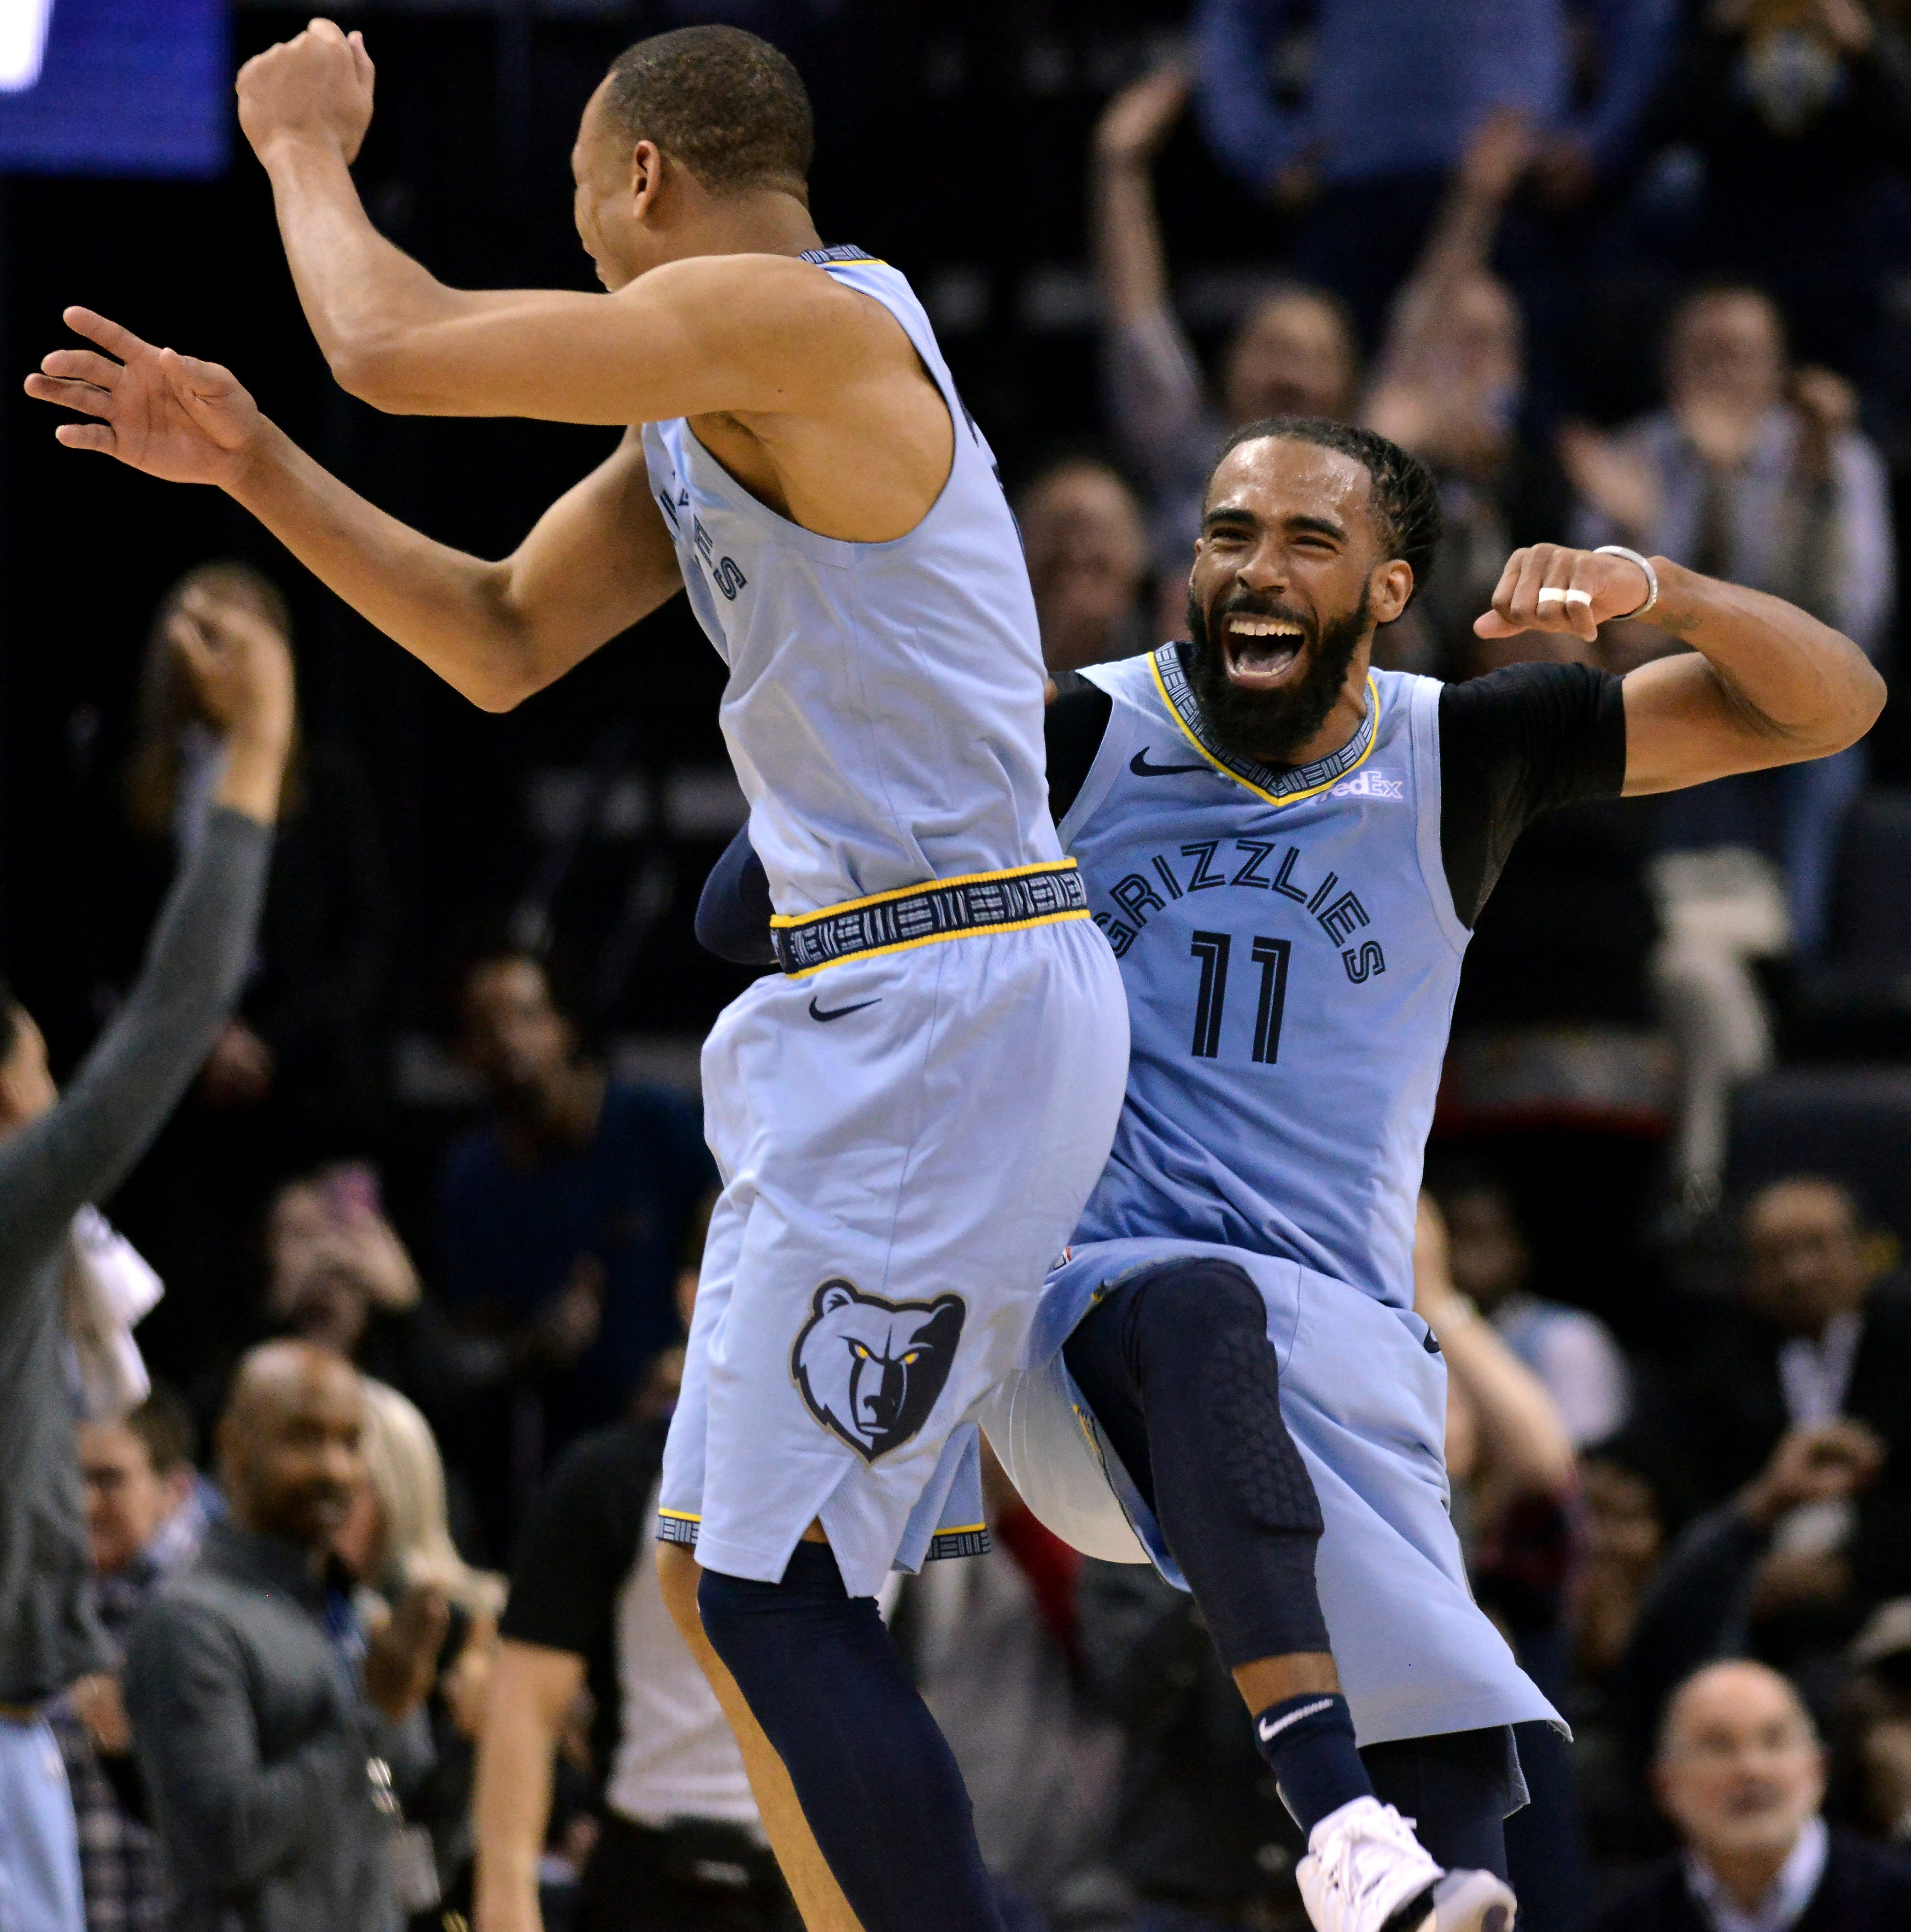 The Memphis Grizzlies are better off without Marc Gasol | Giannotto